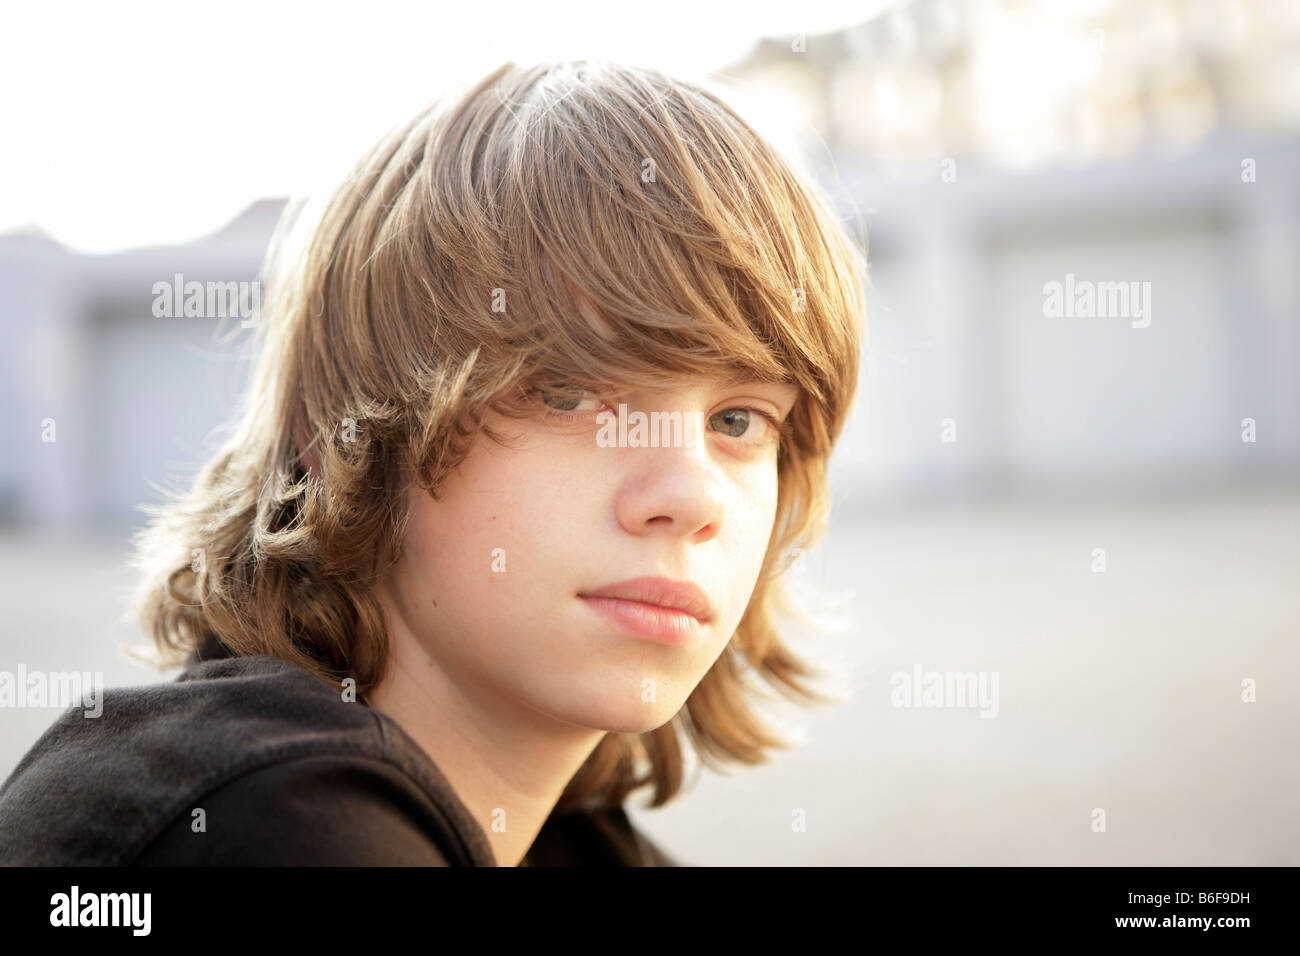 Boy, 12, with blond hair - Stock Image